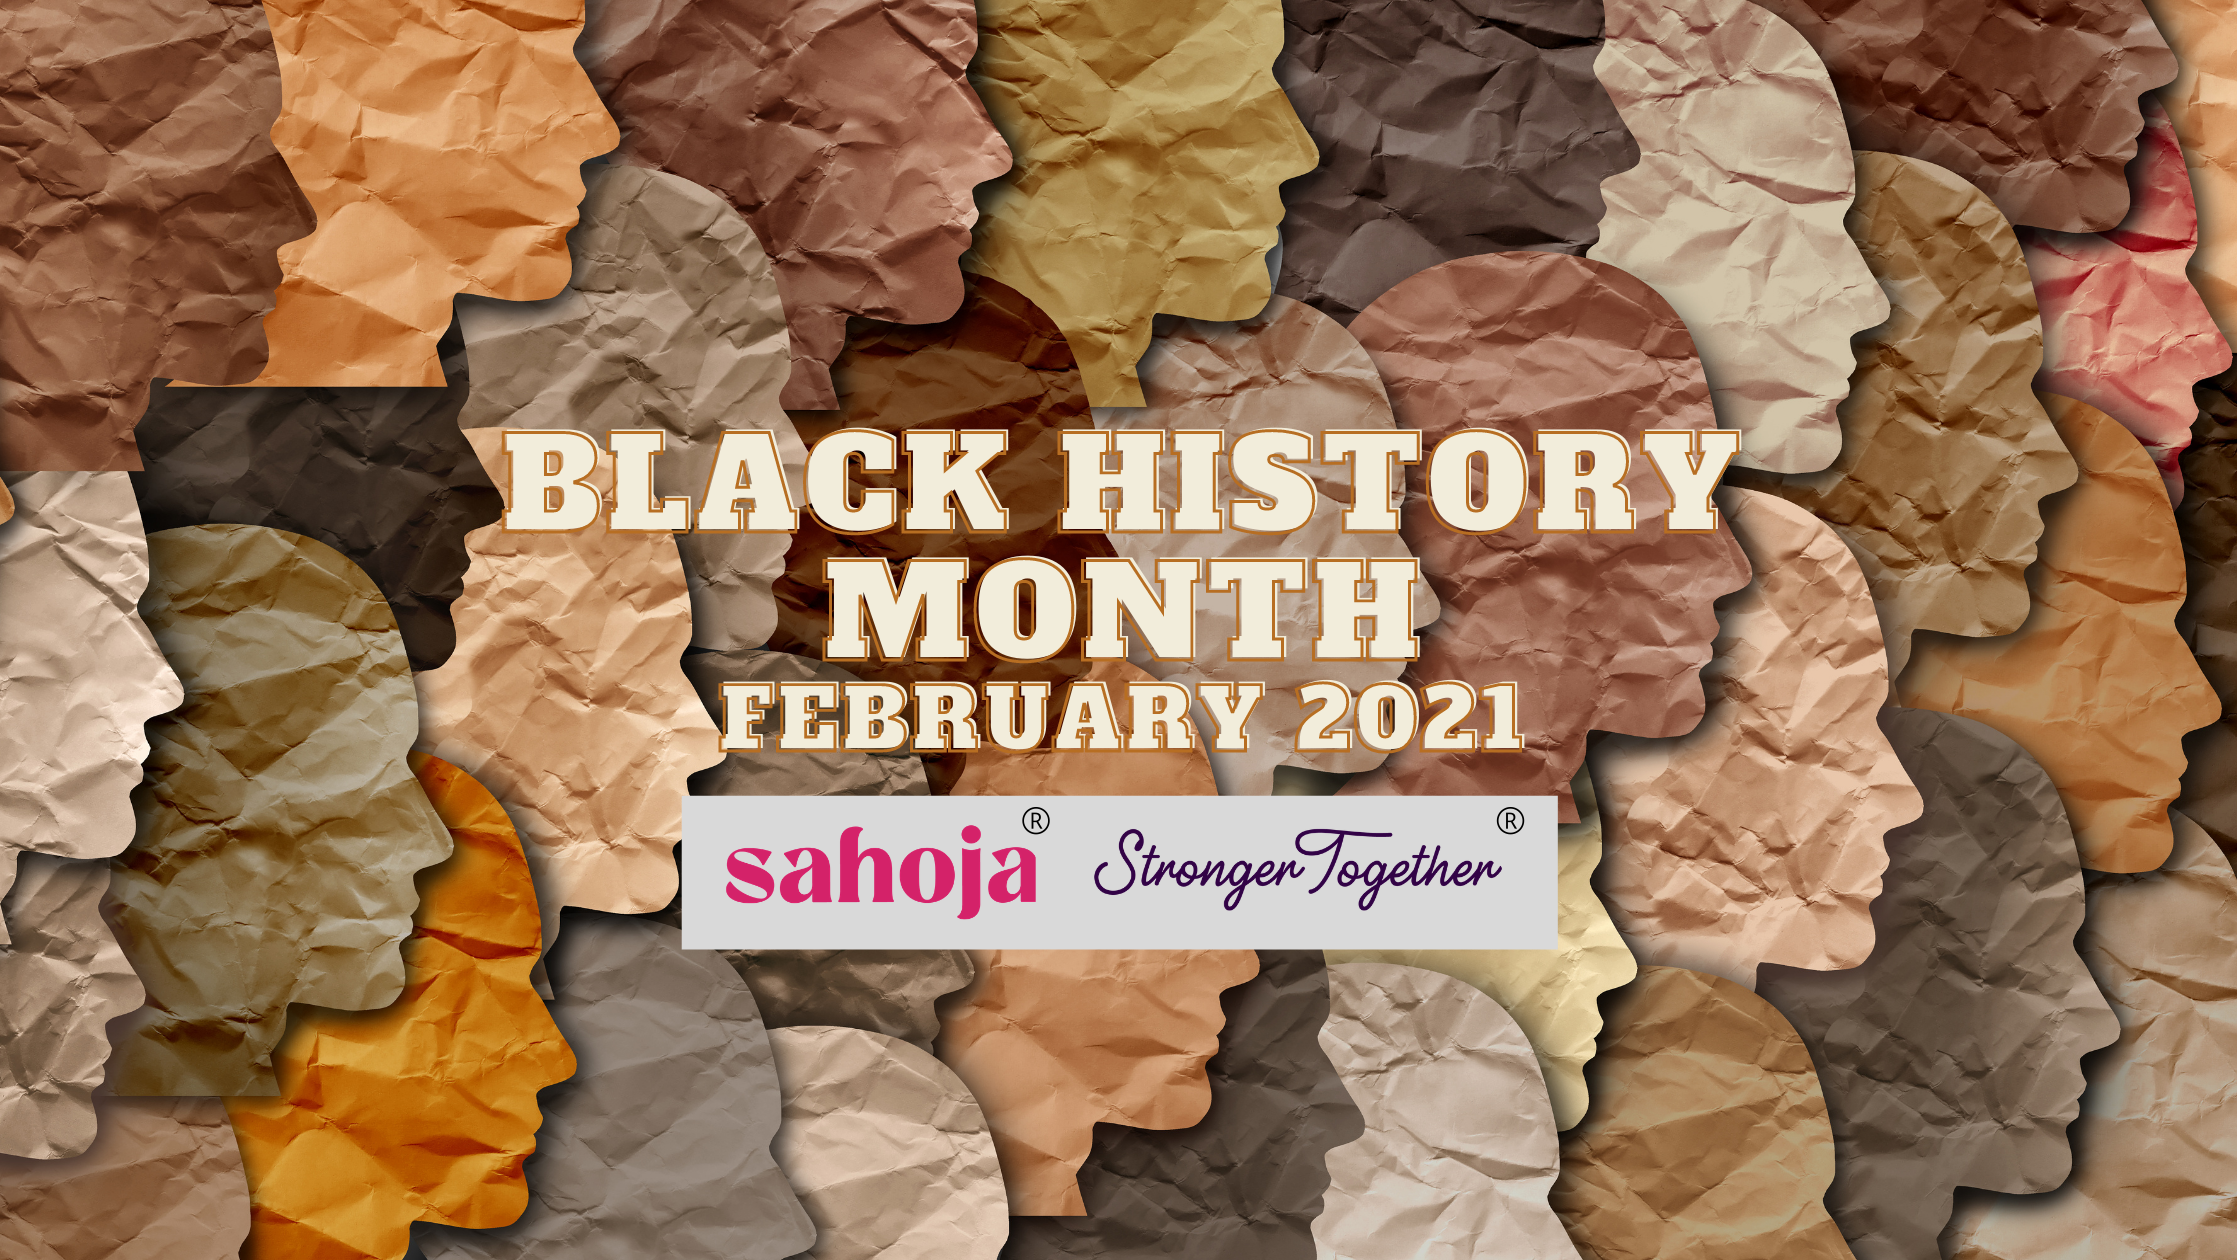 Black History Month February 2021 with faces of different shades